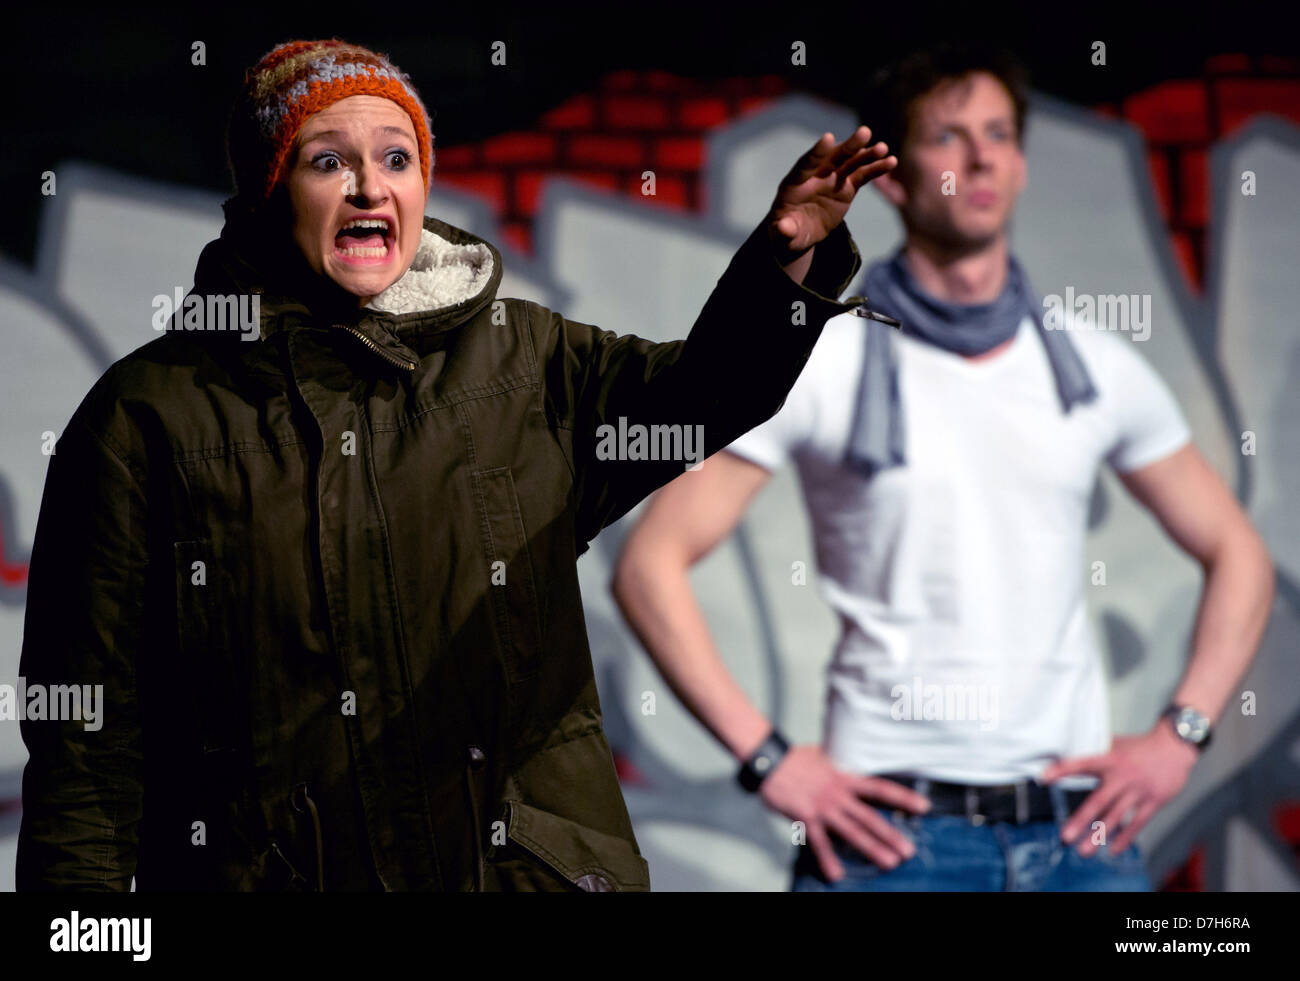 Berlin, Germany. 7th May 2013. Actors Susanne Theil (L) and Gideon Rapp perform during a rehearsal of the piece - Stock Image